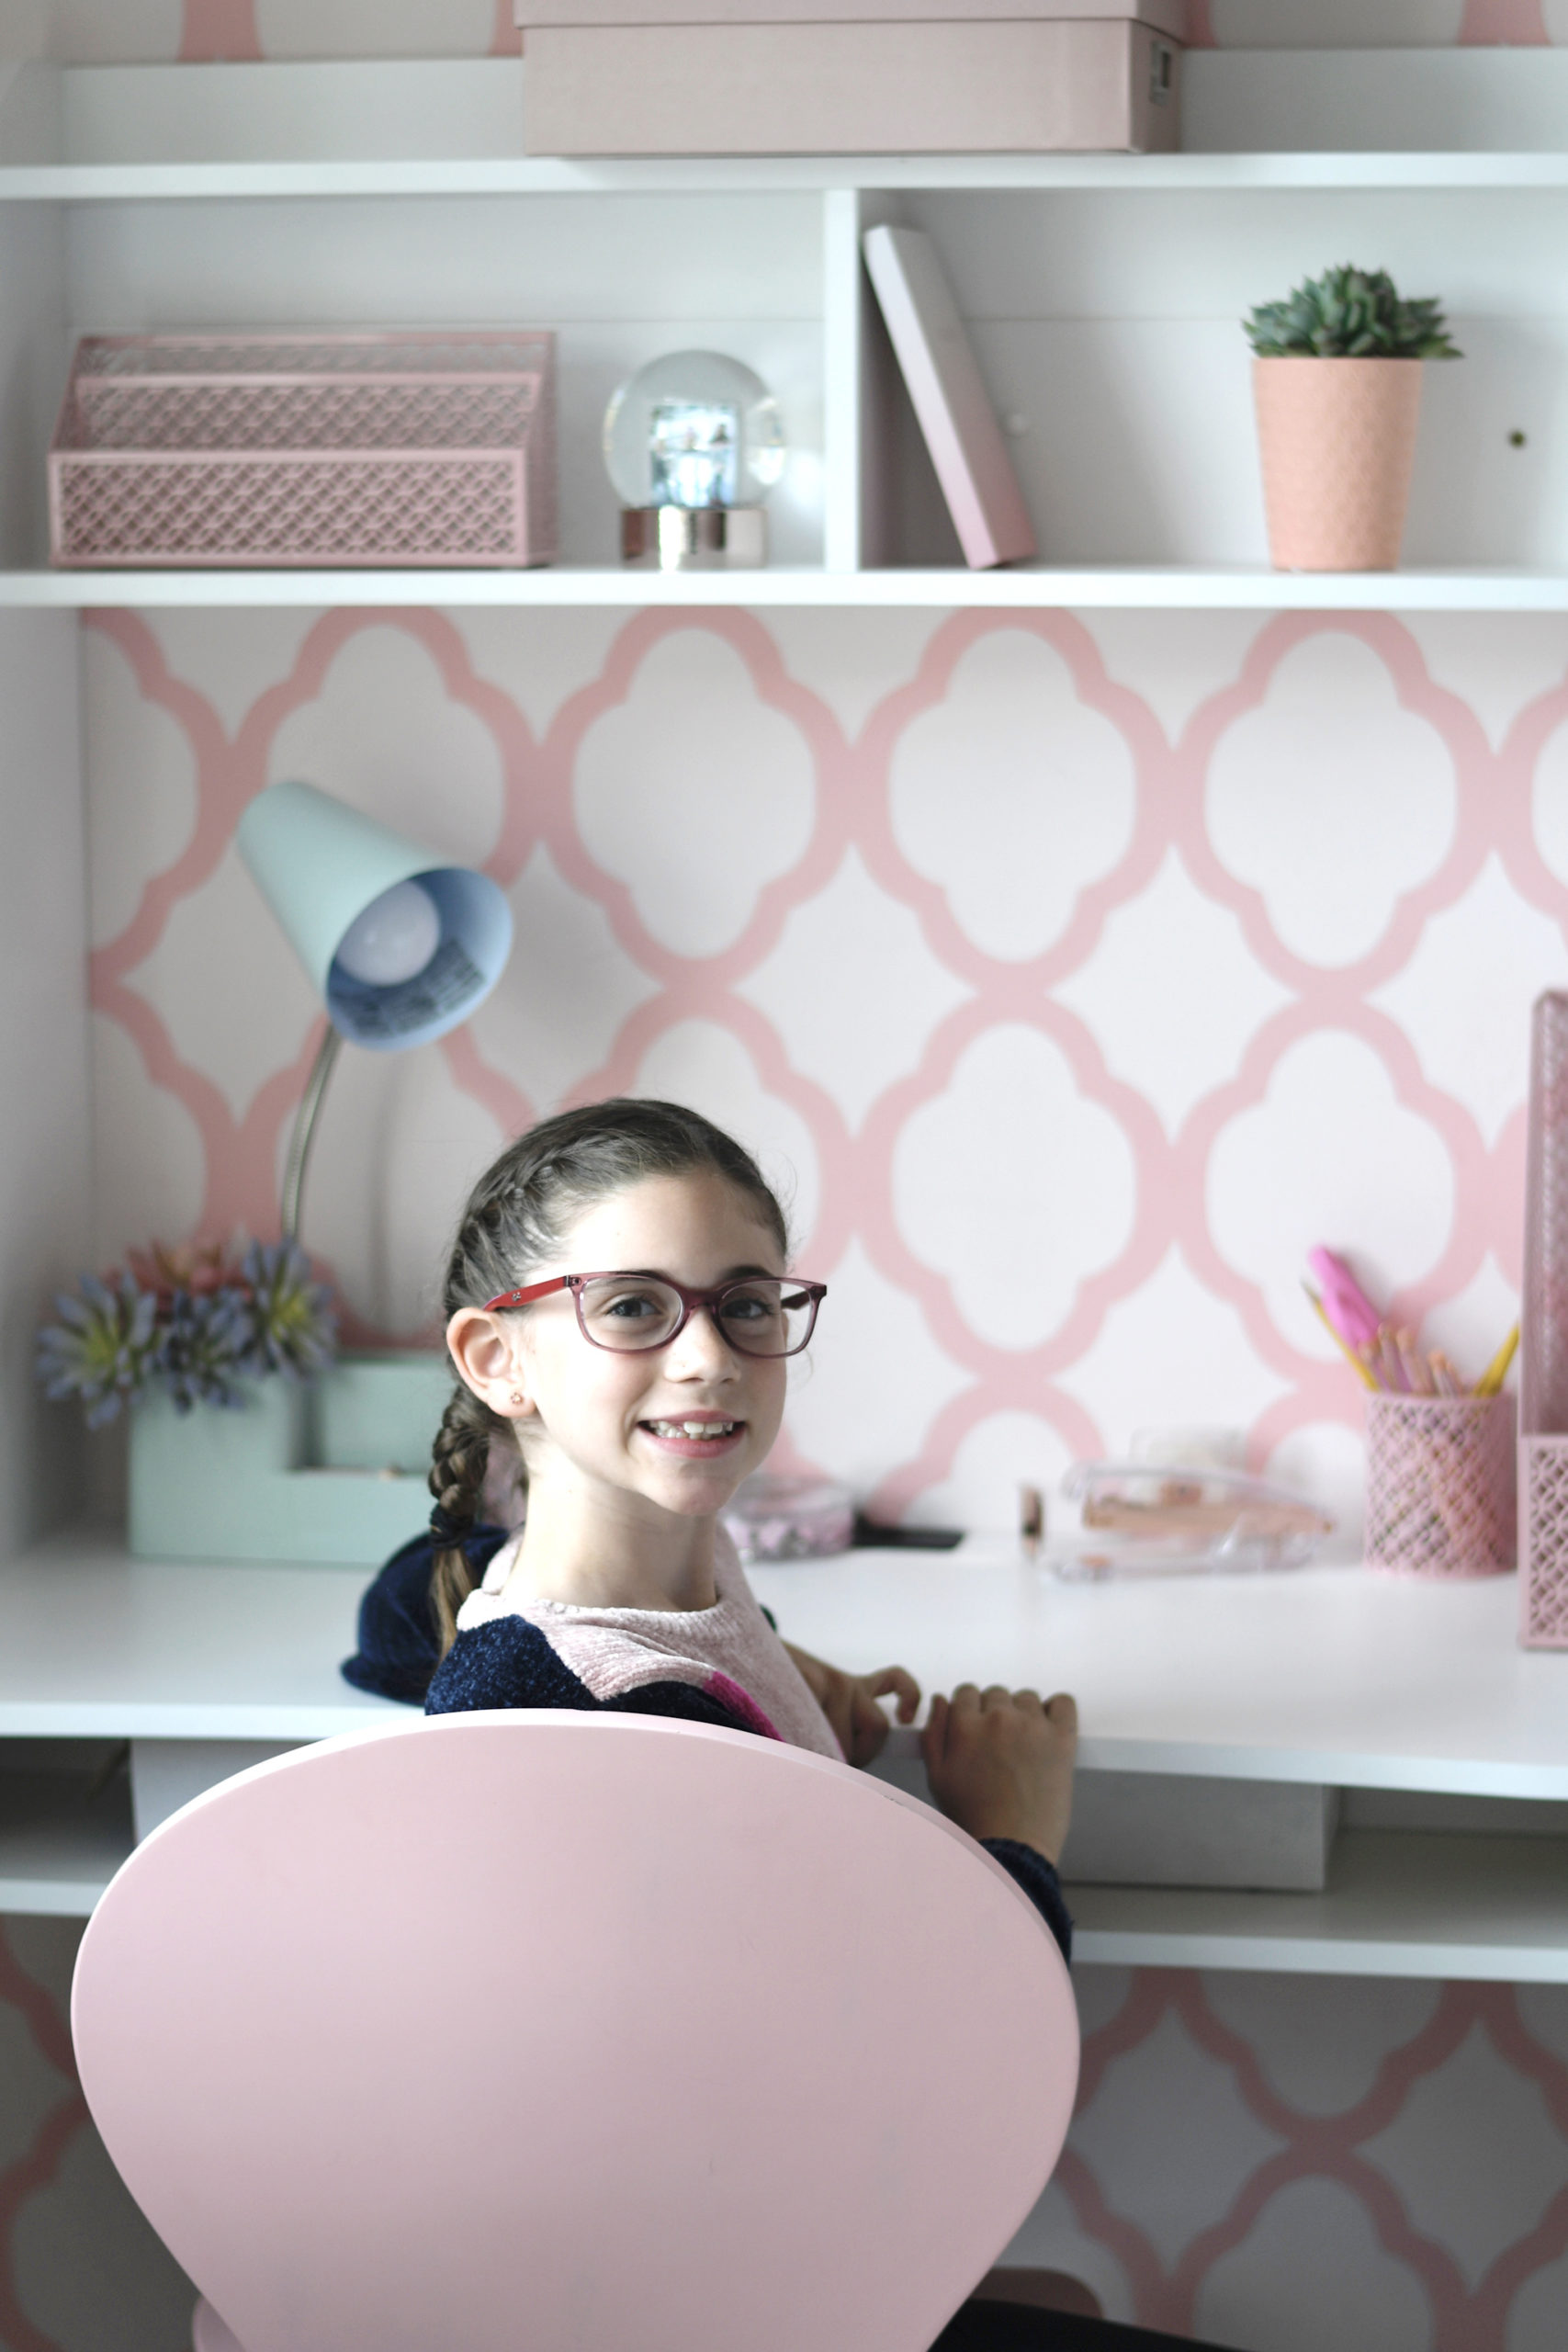 Mounted Wall Desk in Girls Room